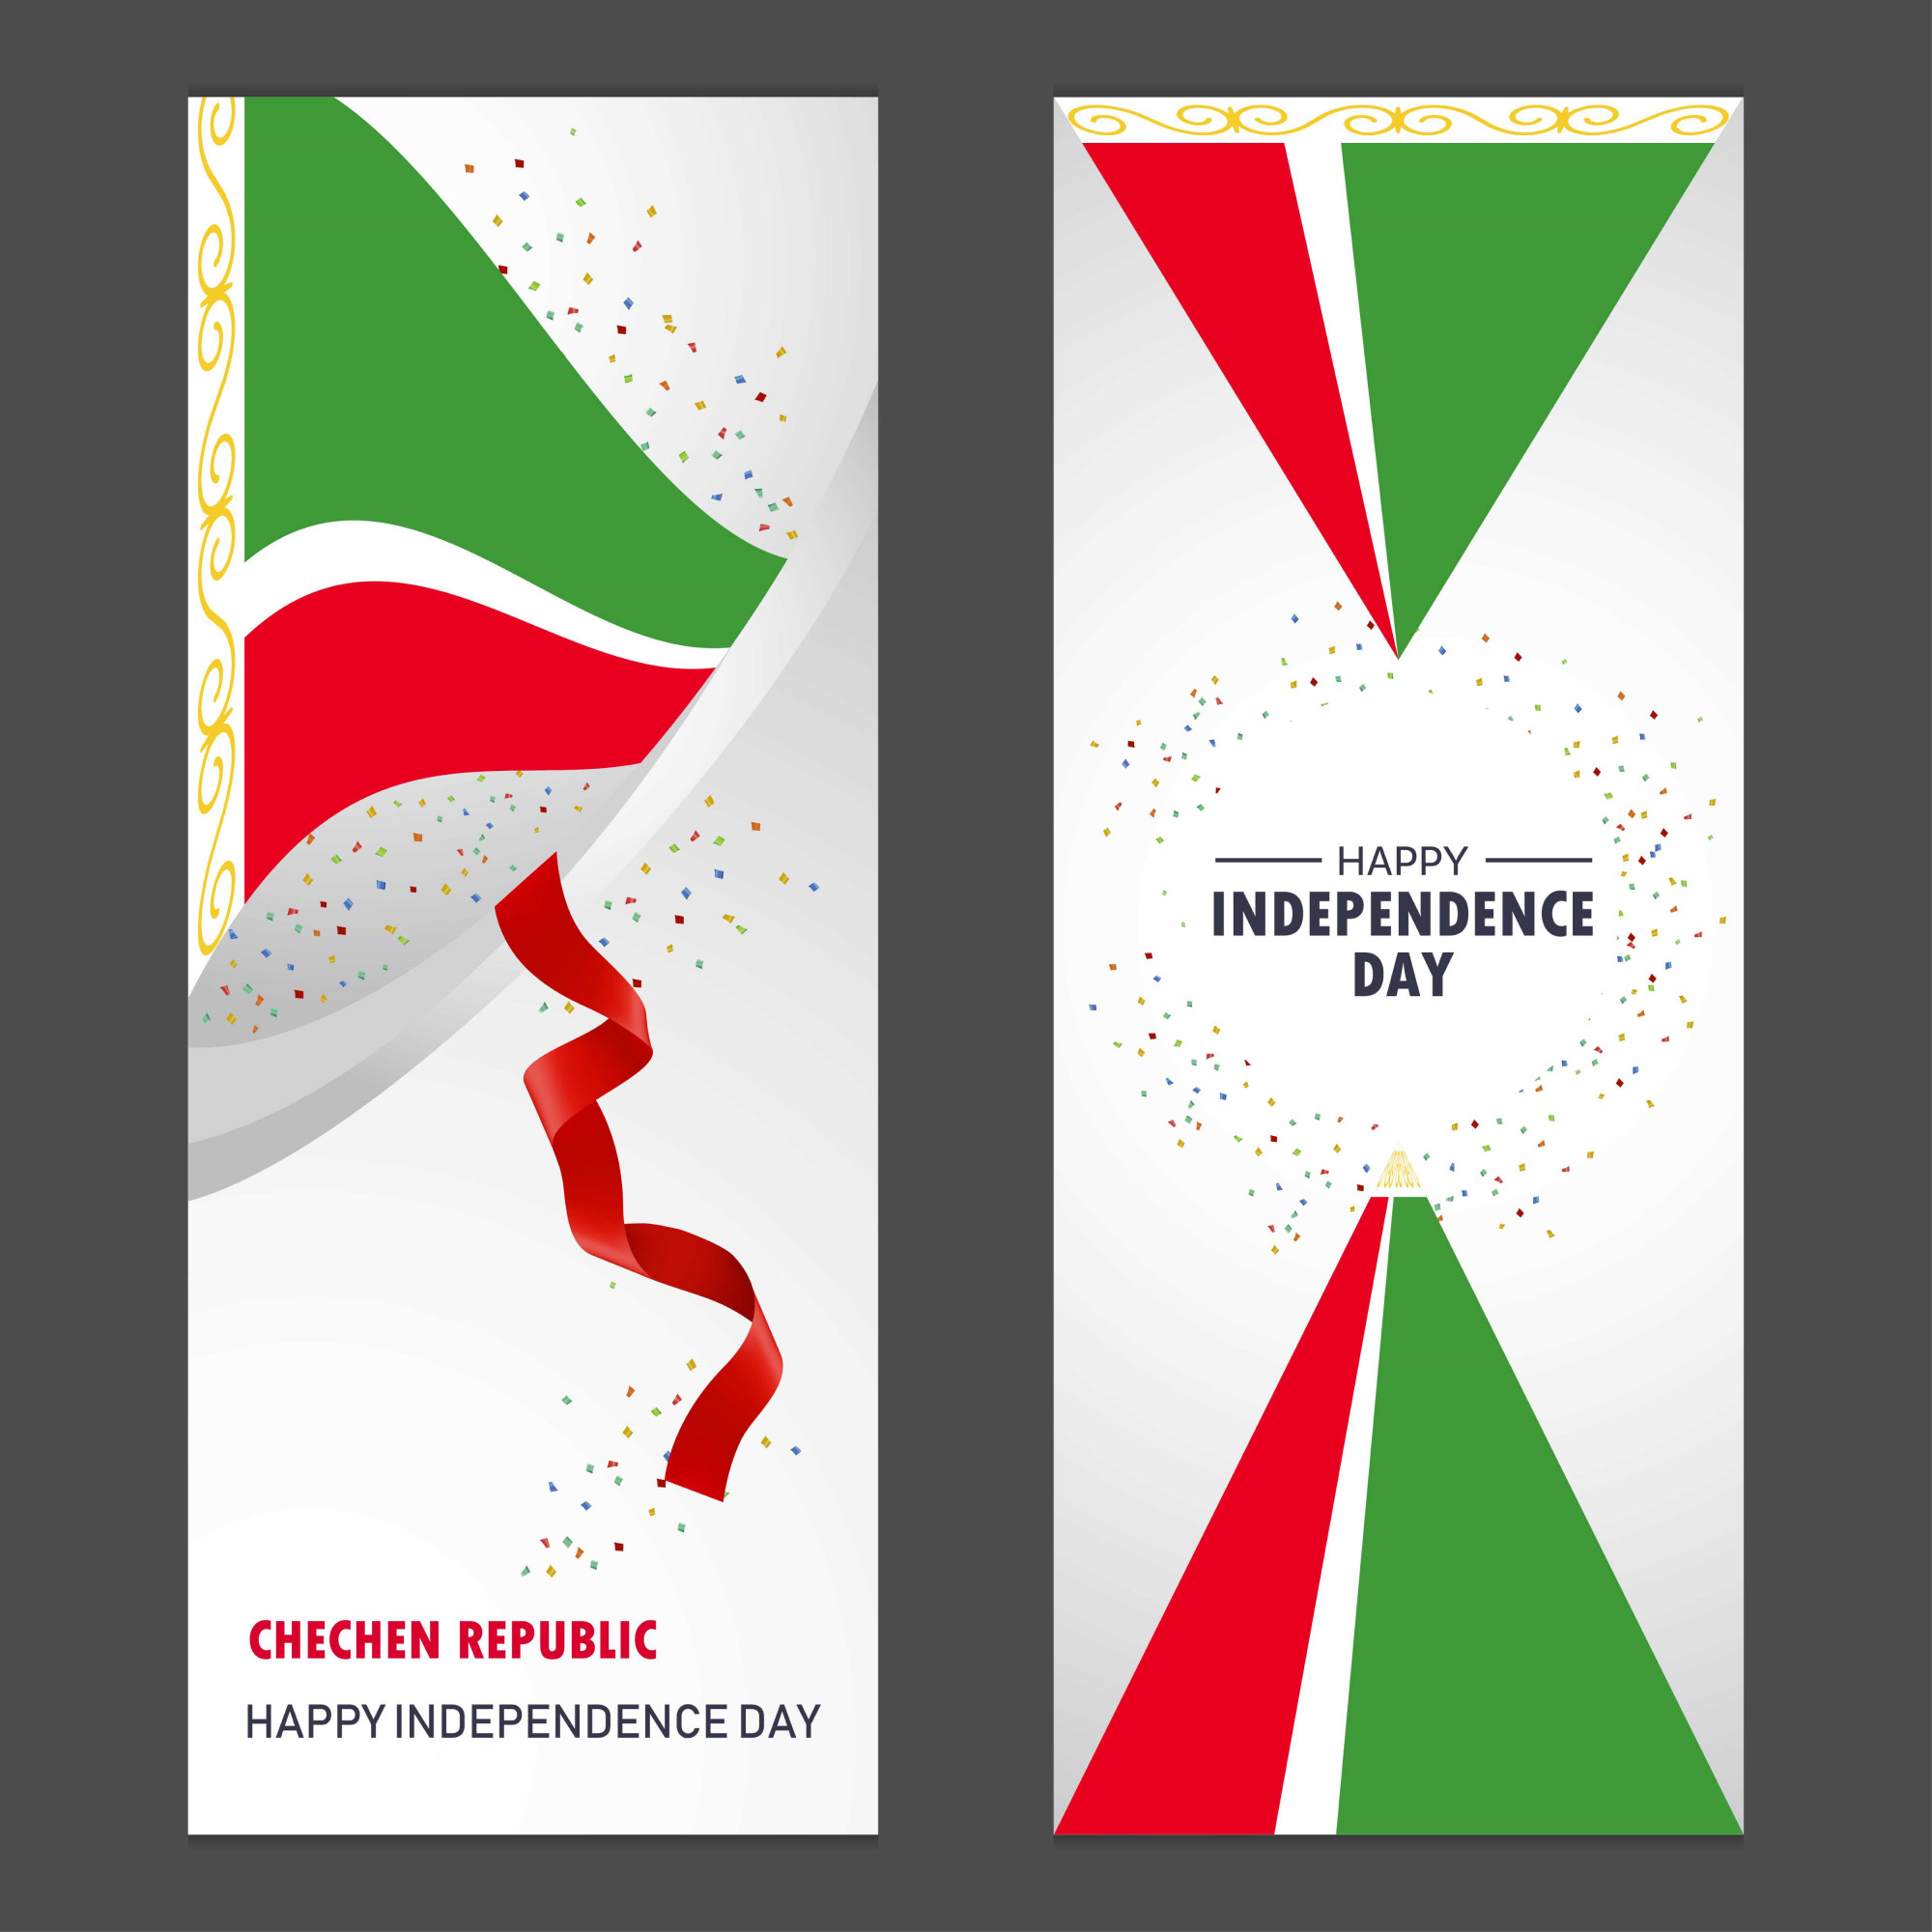 Chechen Republic Happy independence day